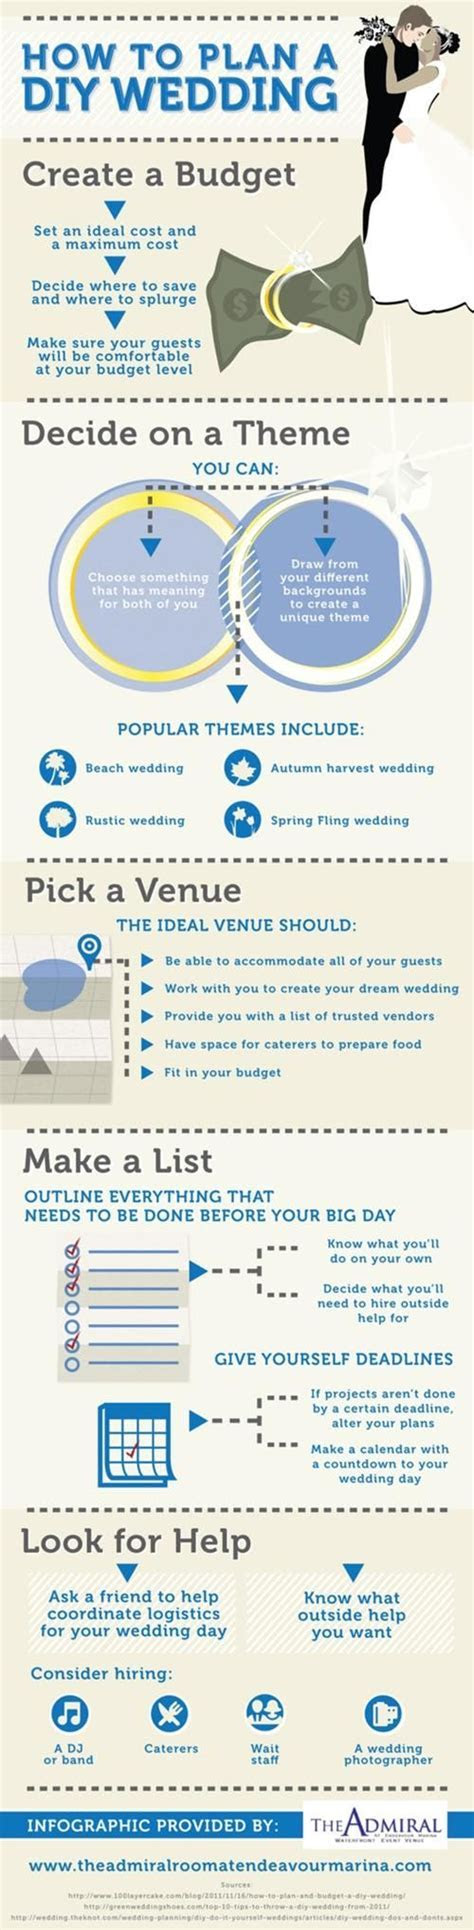 75 best Budget Wedding Checklists images by Brie on a